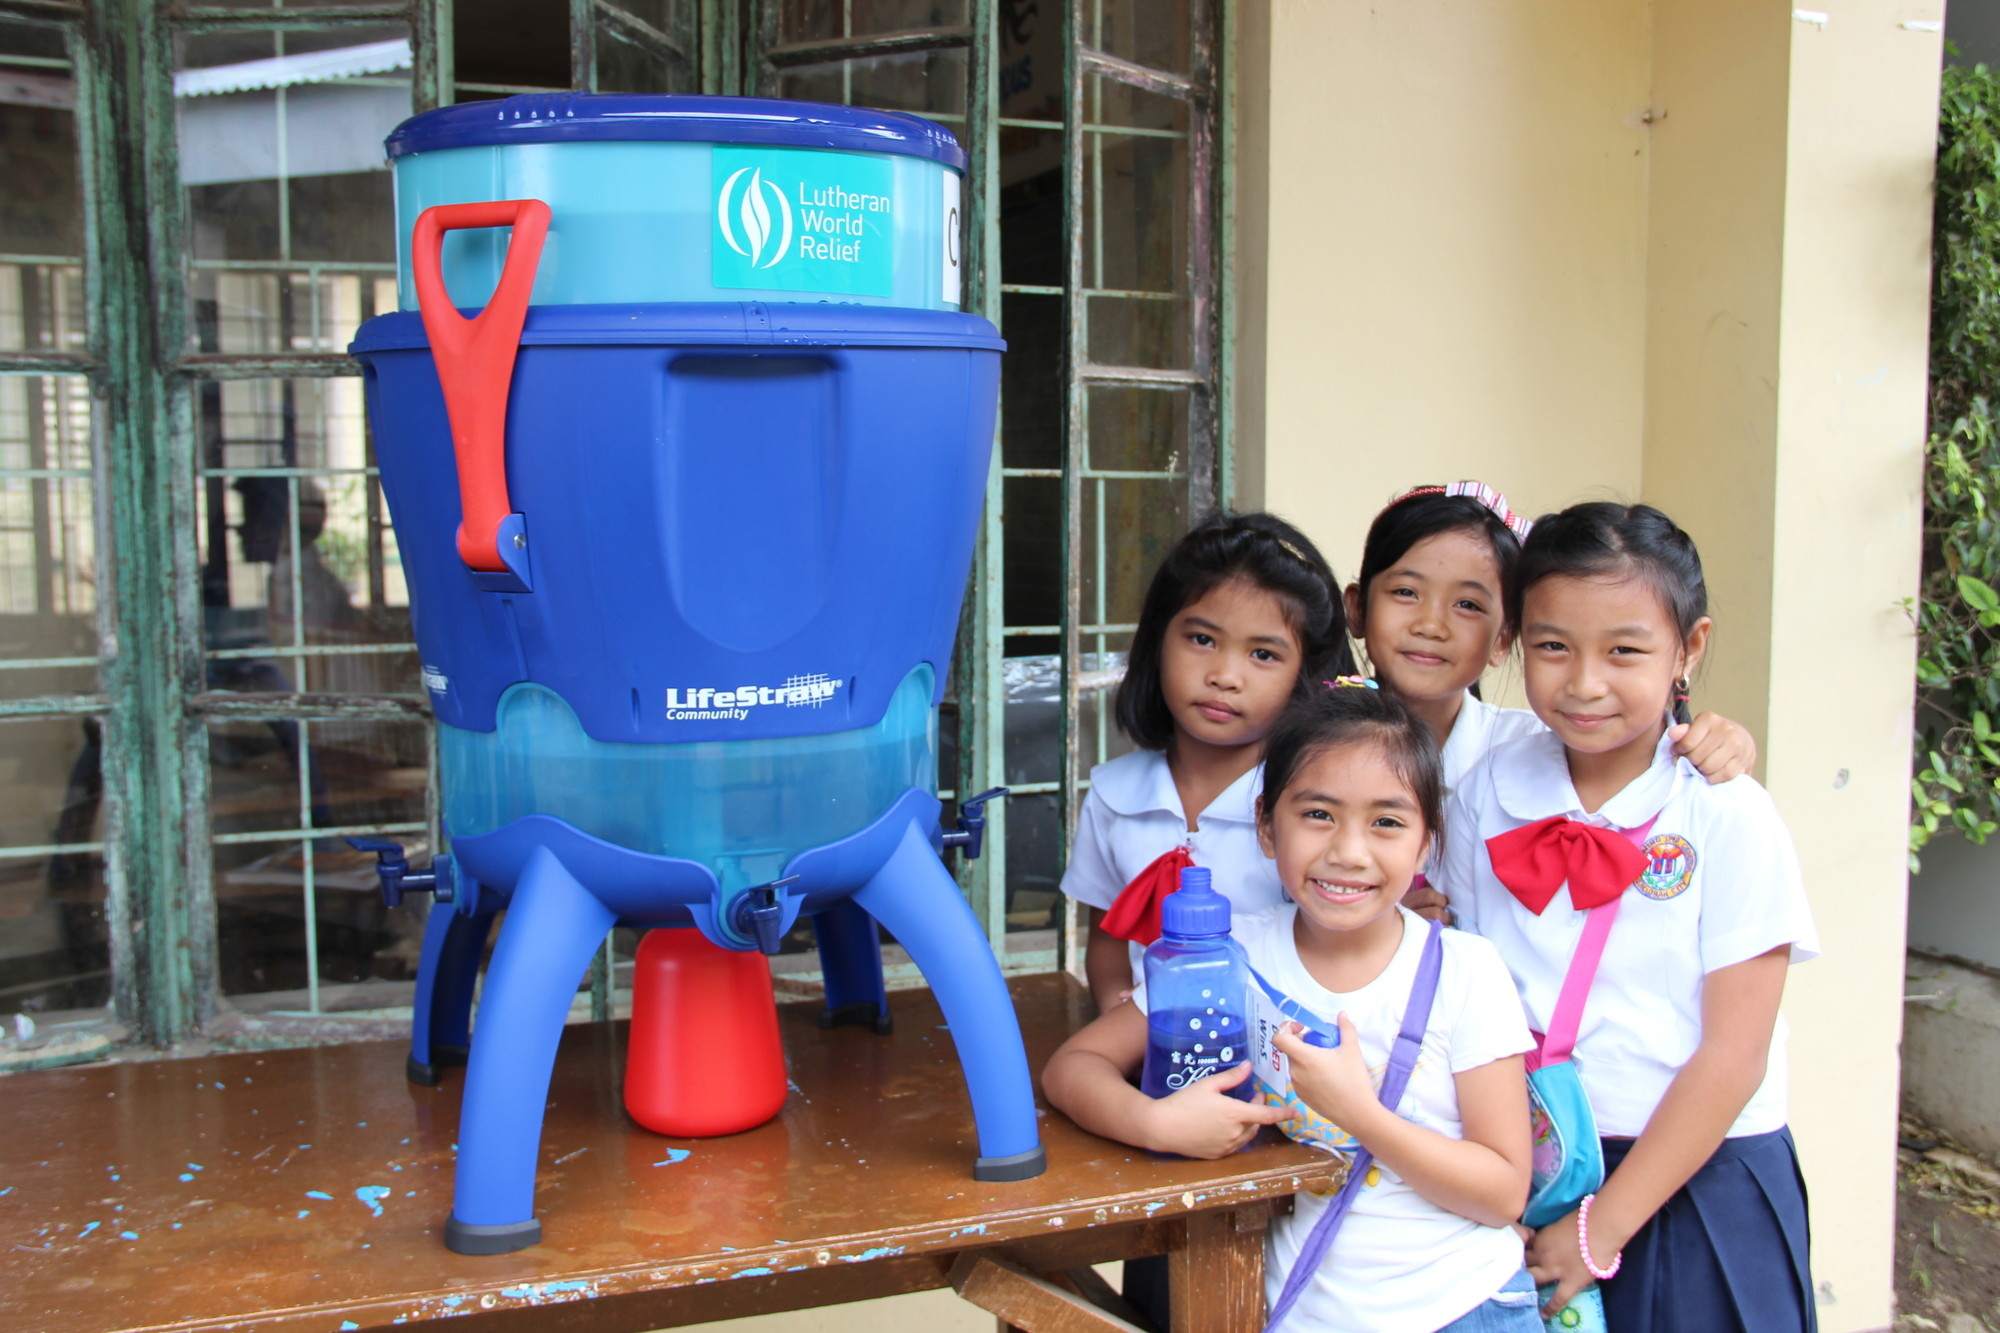 School children in the Philippines enjoy water from their Life Straw water filtration unit. These refillable water tanks hold 45 liters of water and can filter 12 liters per hour. These filters were distributed as a part of the response to Typhoon Haiyan, which struck the Philippines November 8, 2013.